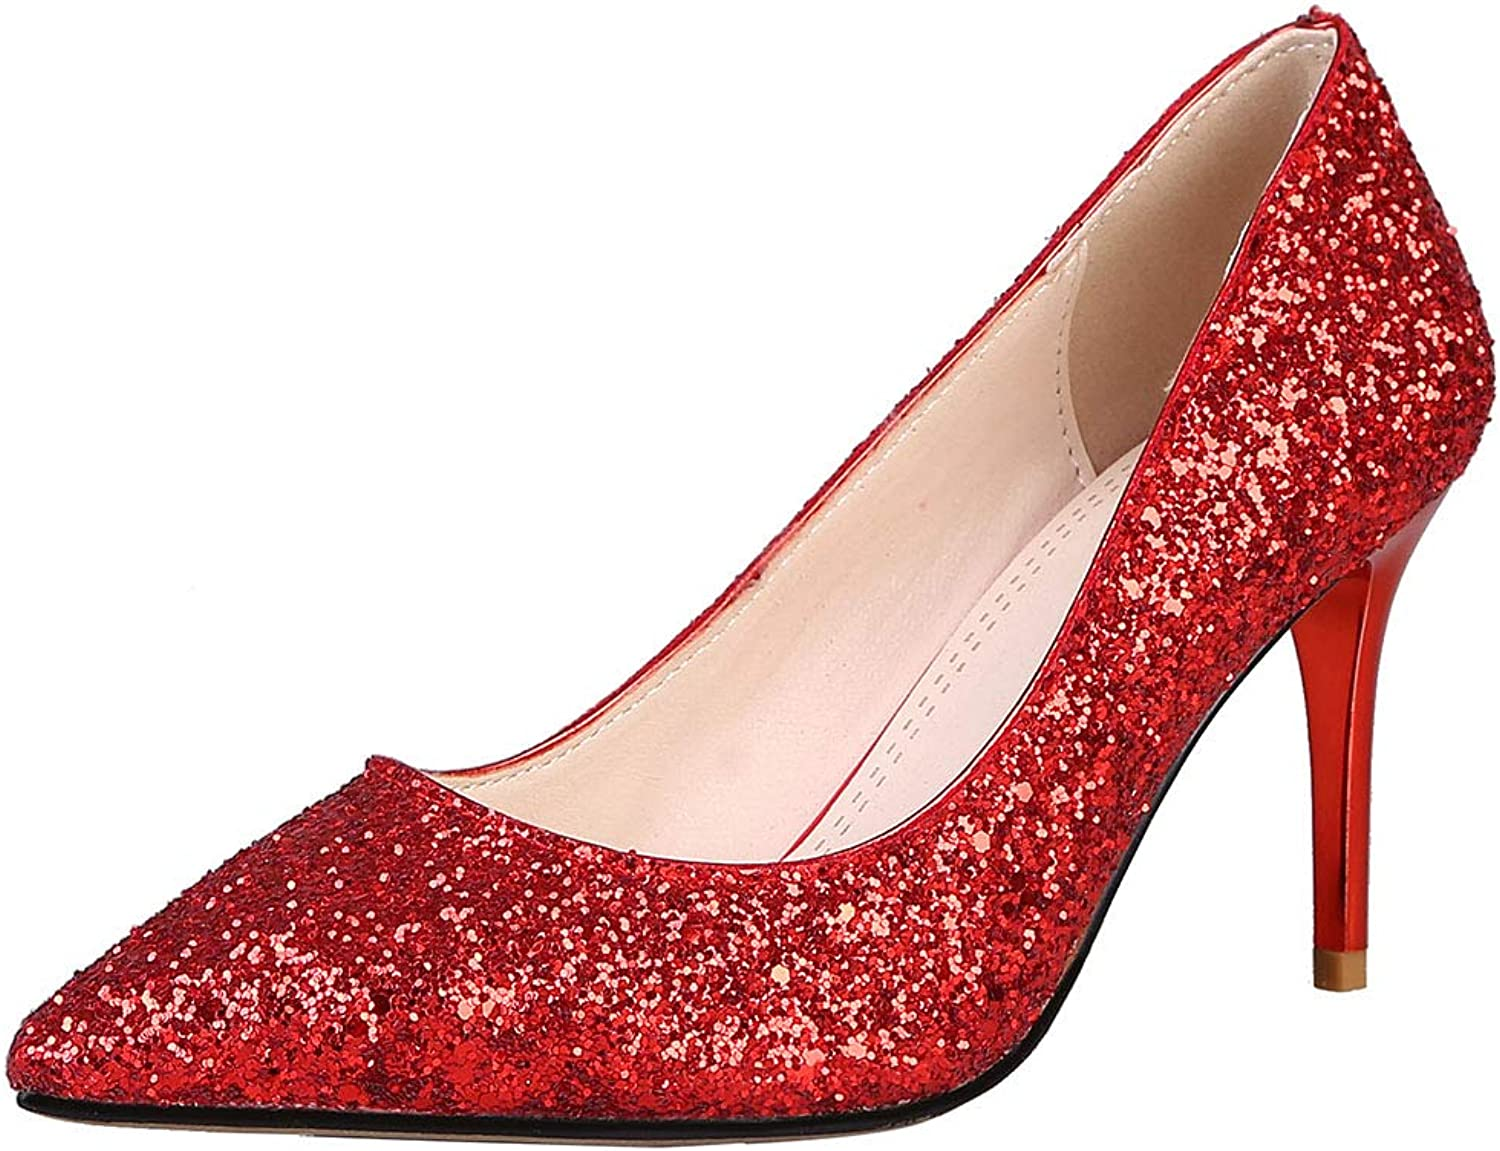 KemeKiss Women Sexy Pointed Toe Pumps Wedding Thin Heels Pumps Glitter Party shoes